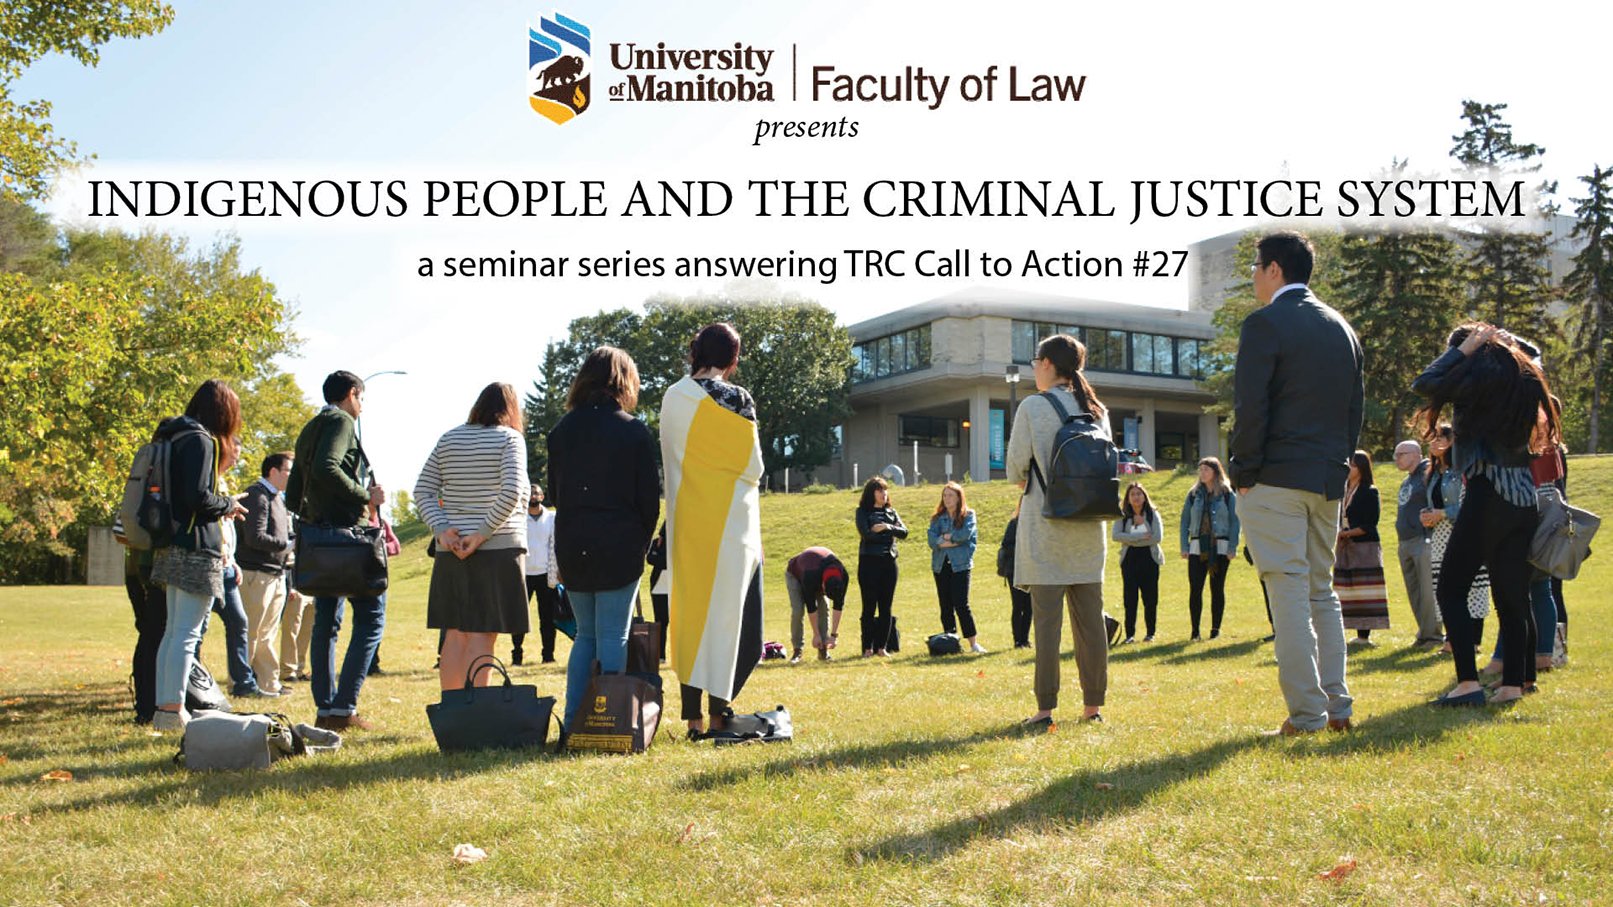 Indigenous People and the Criminal Justice System